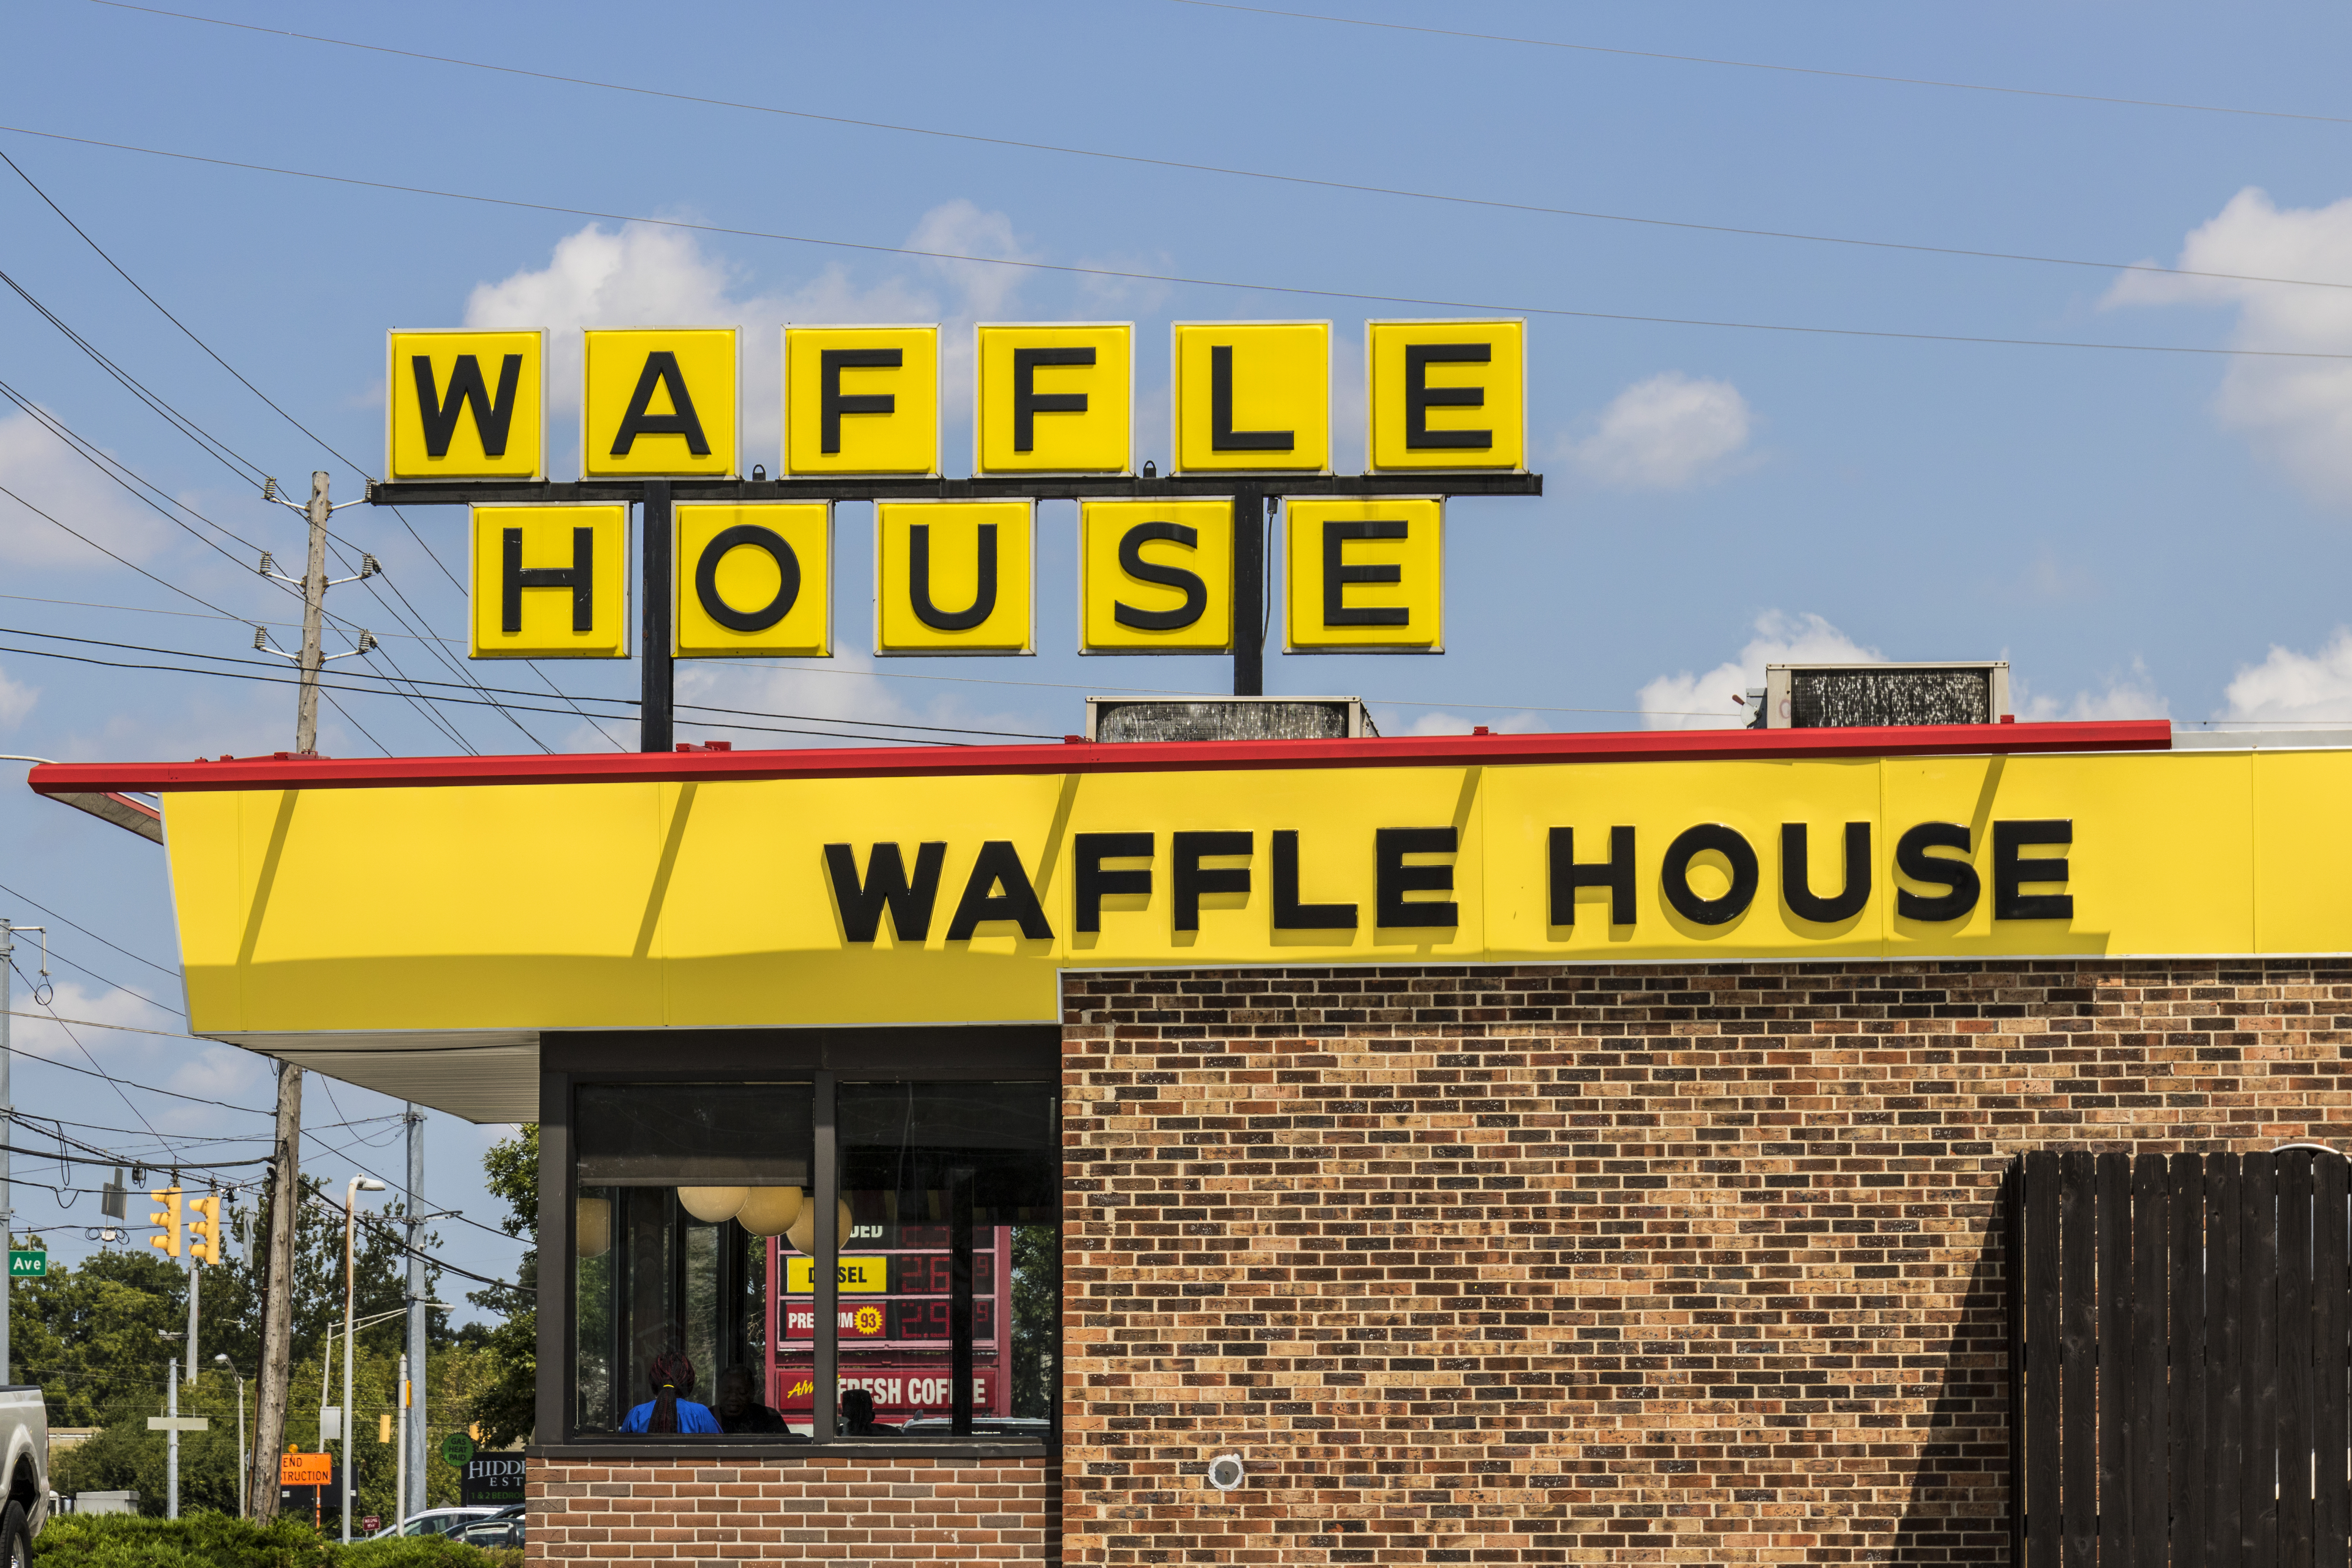 Exterior of a Waffle House restaurant, with a Waffle House sign in the background.